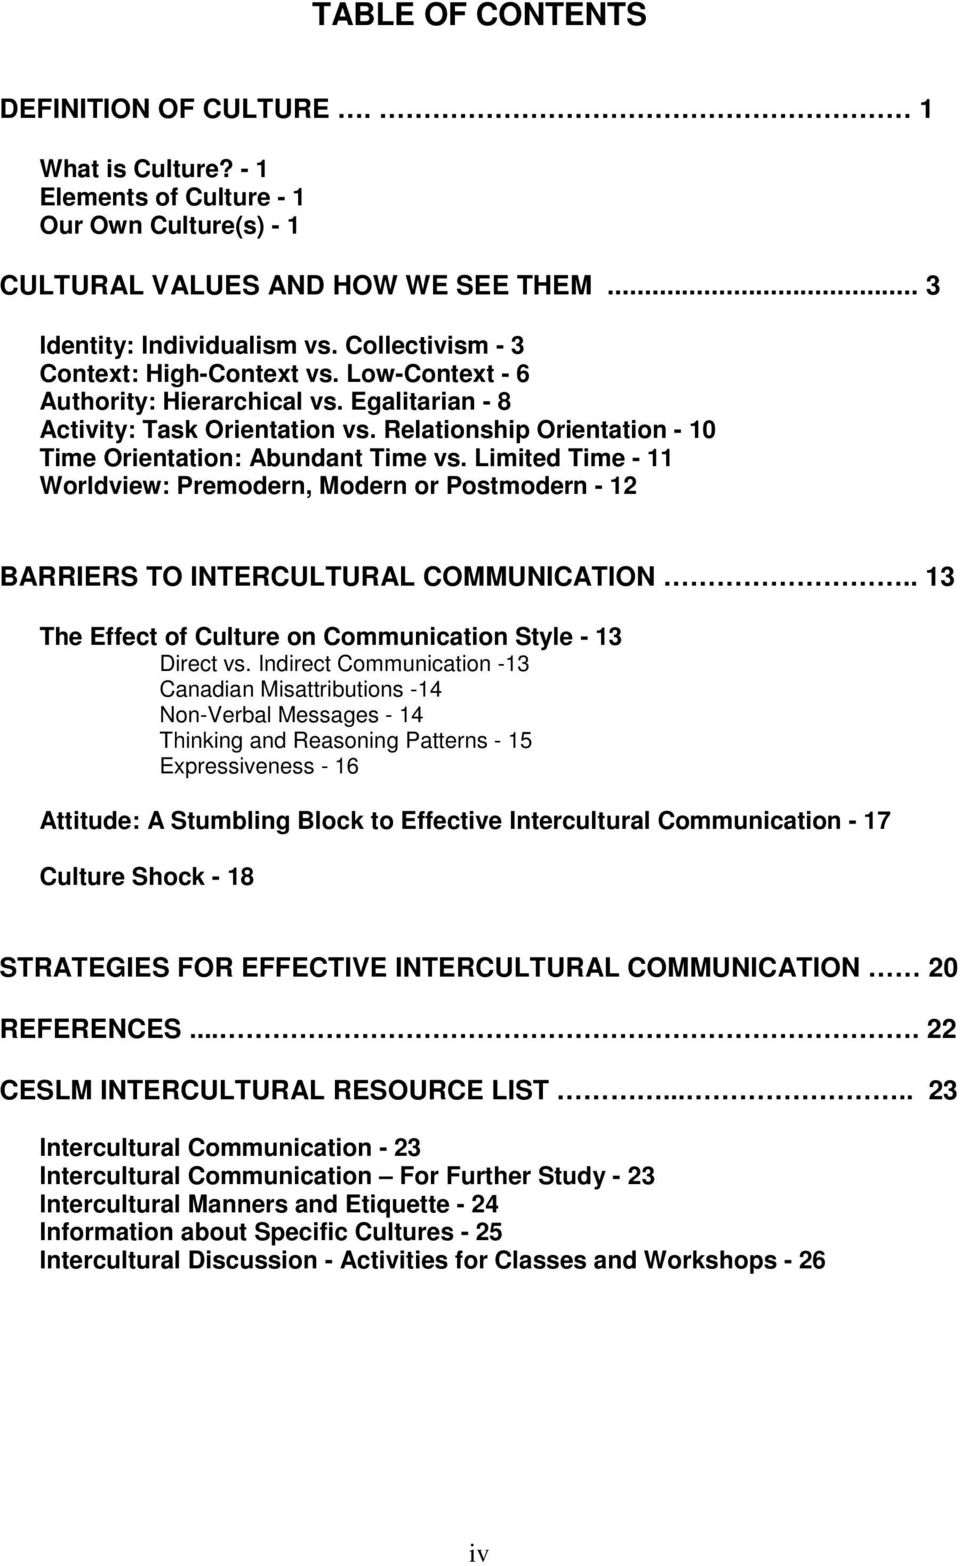 Intercultural Communication Handbook - PDF